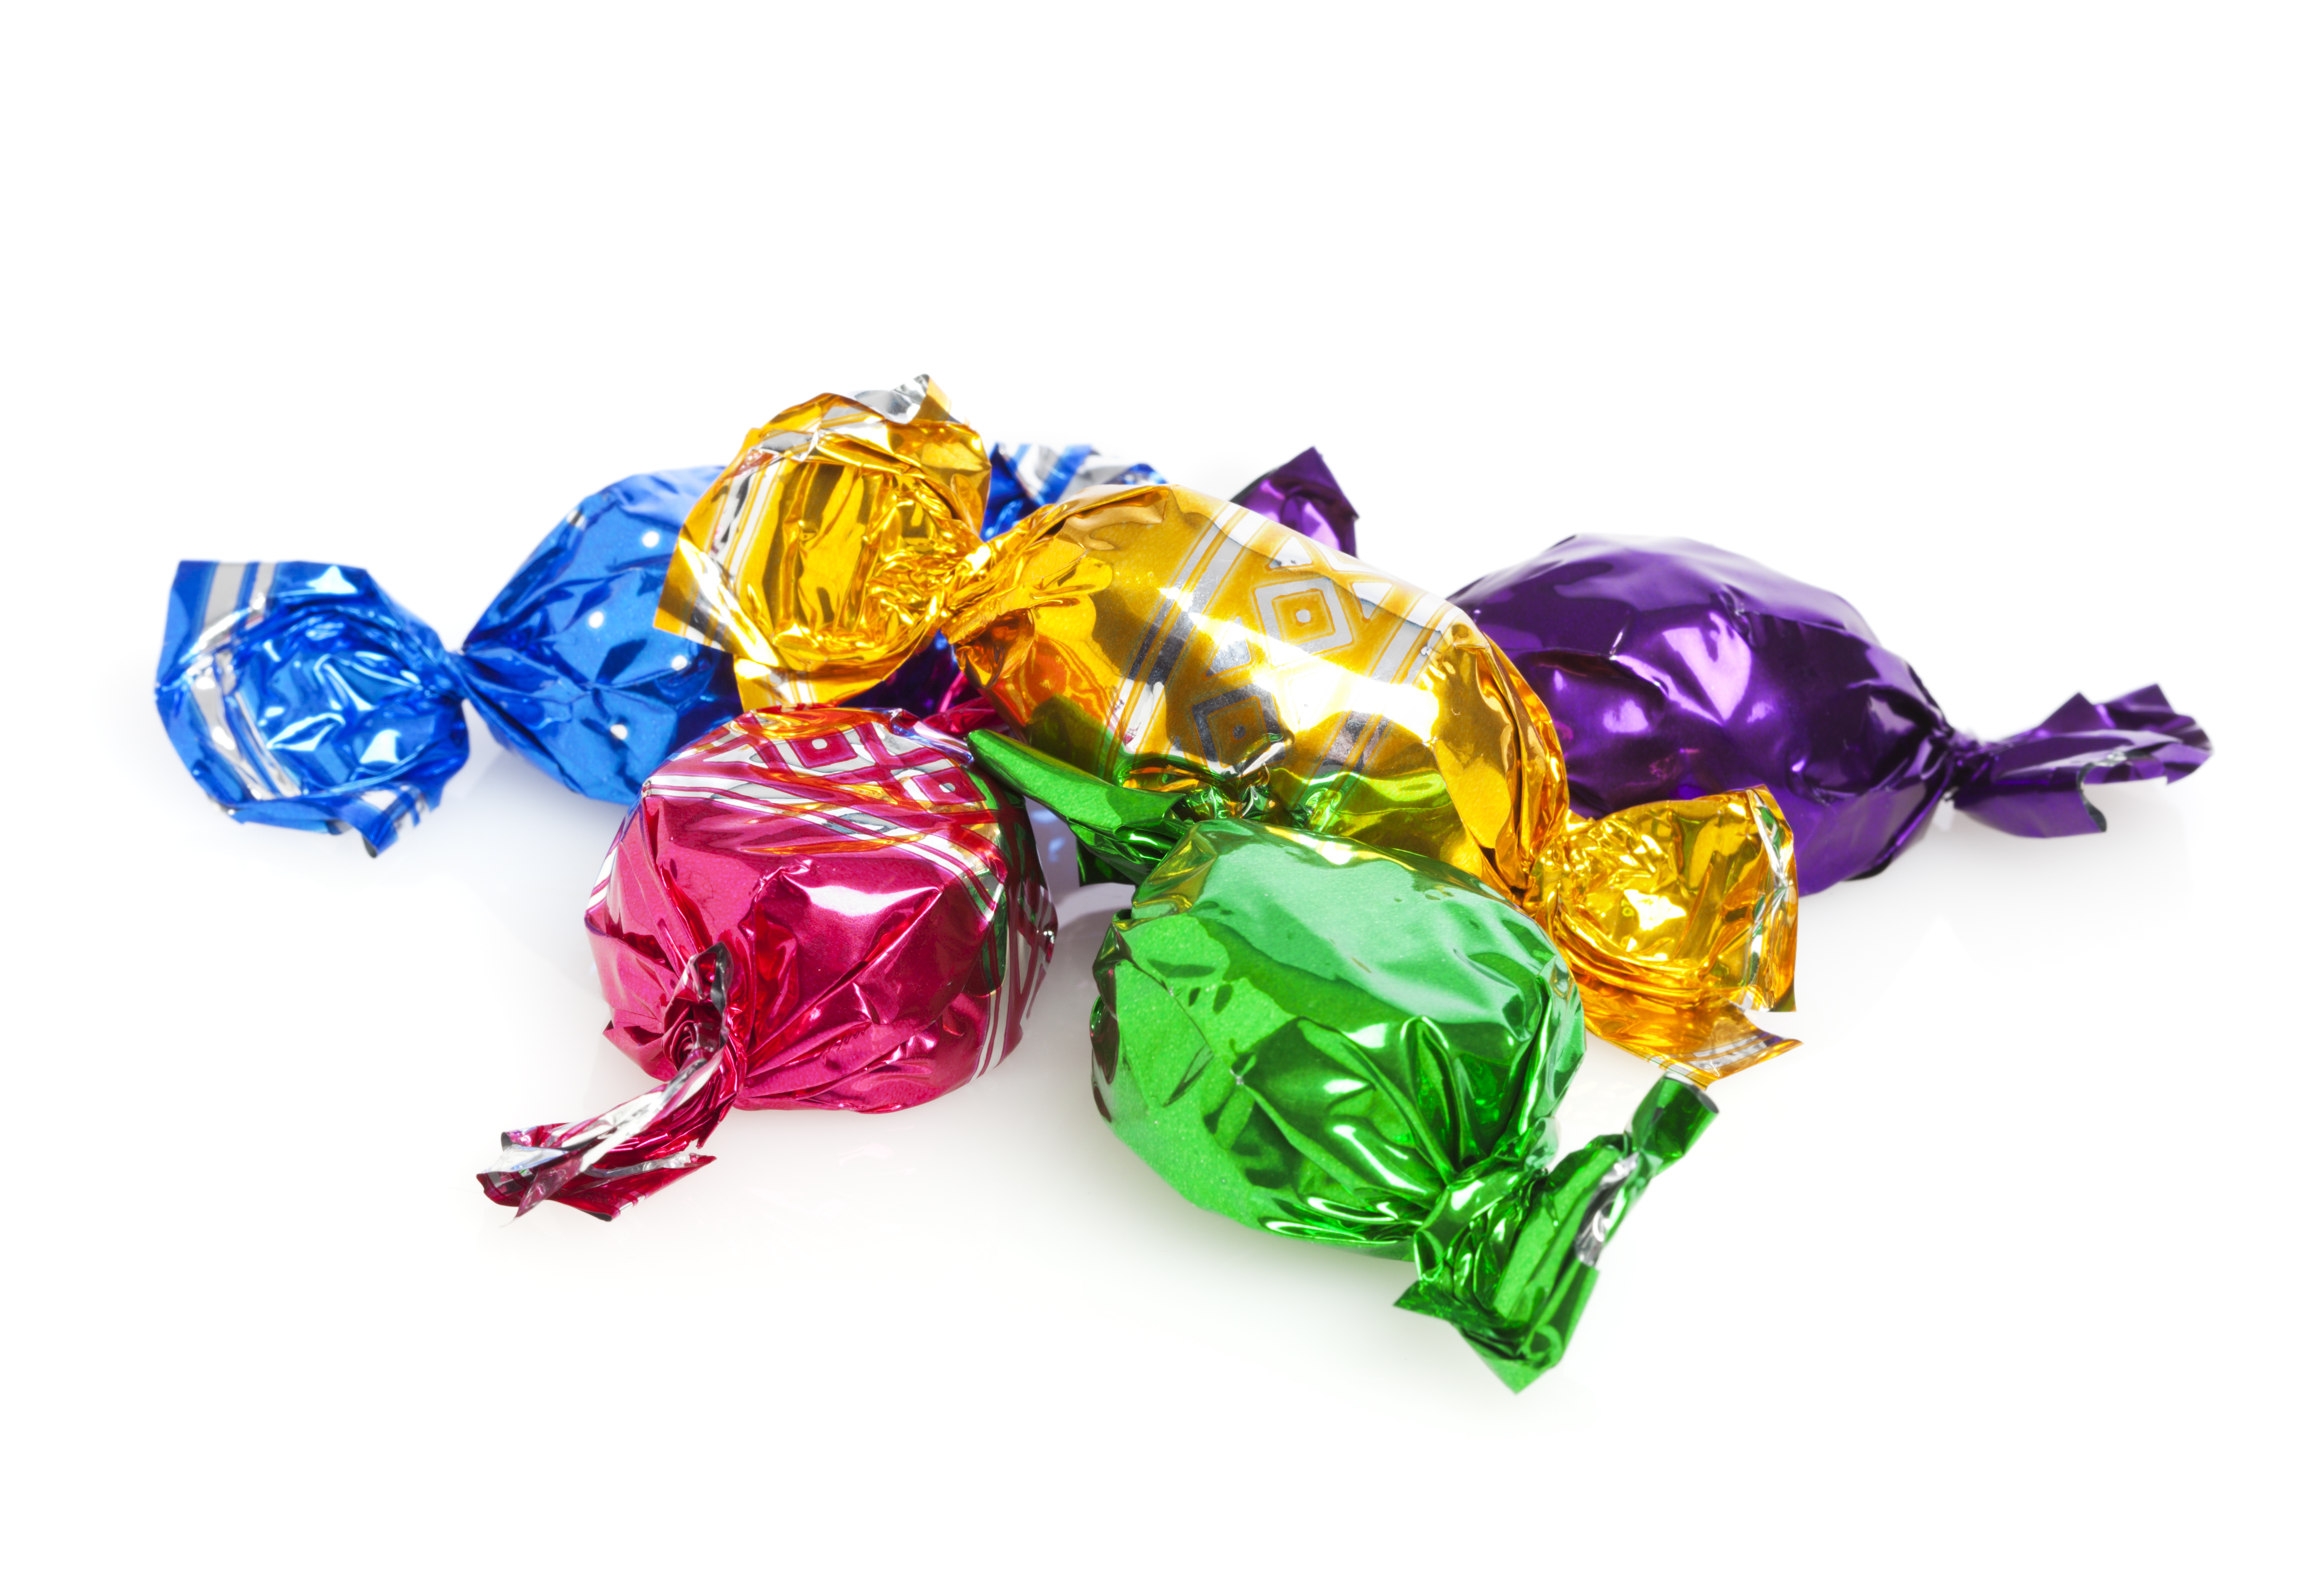 A pile of foil wrapped lollies